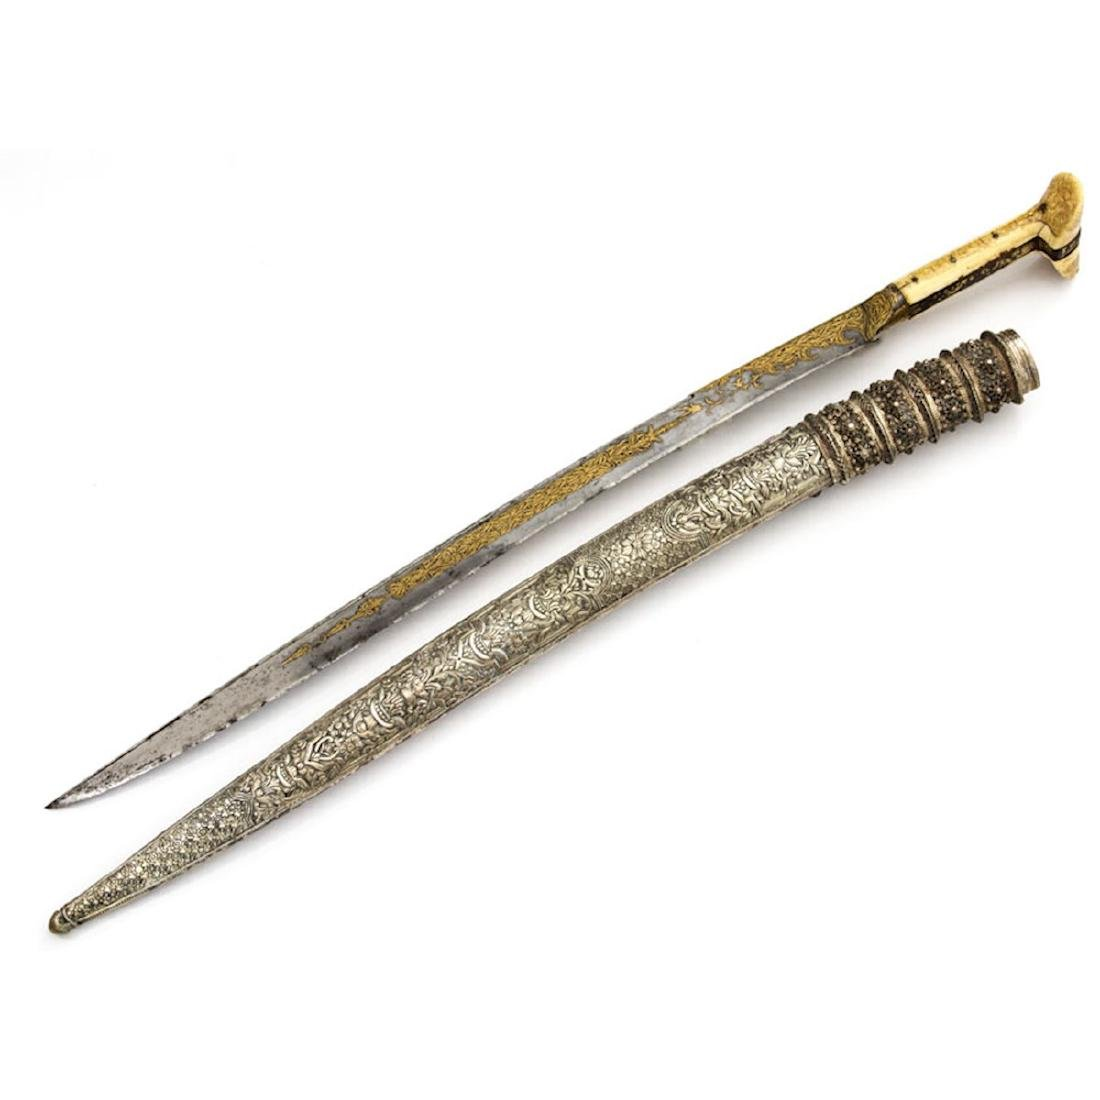 OTTOMAN YATAGAN SWORD WITH GOLD INLAY, 19 C. - 5